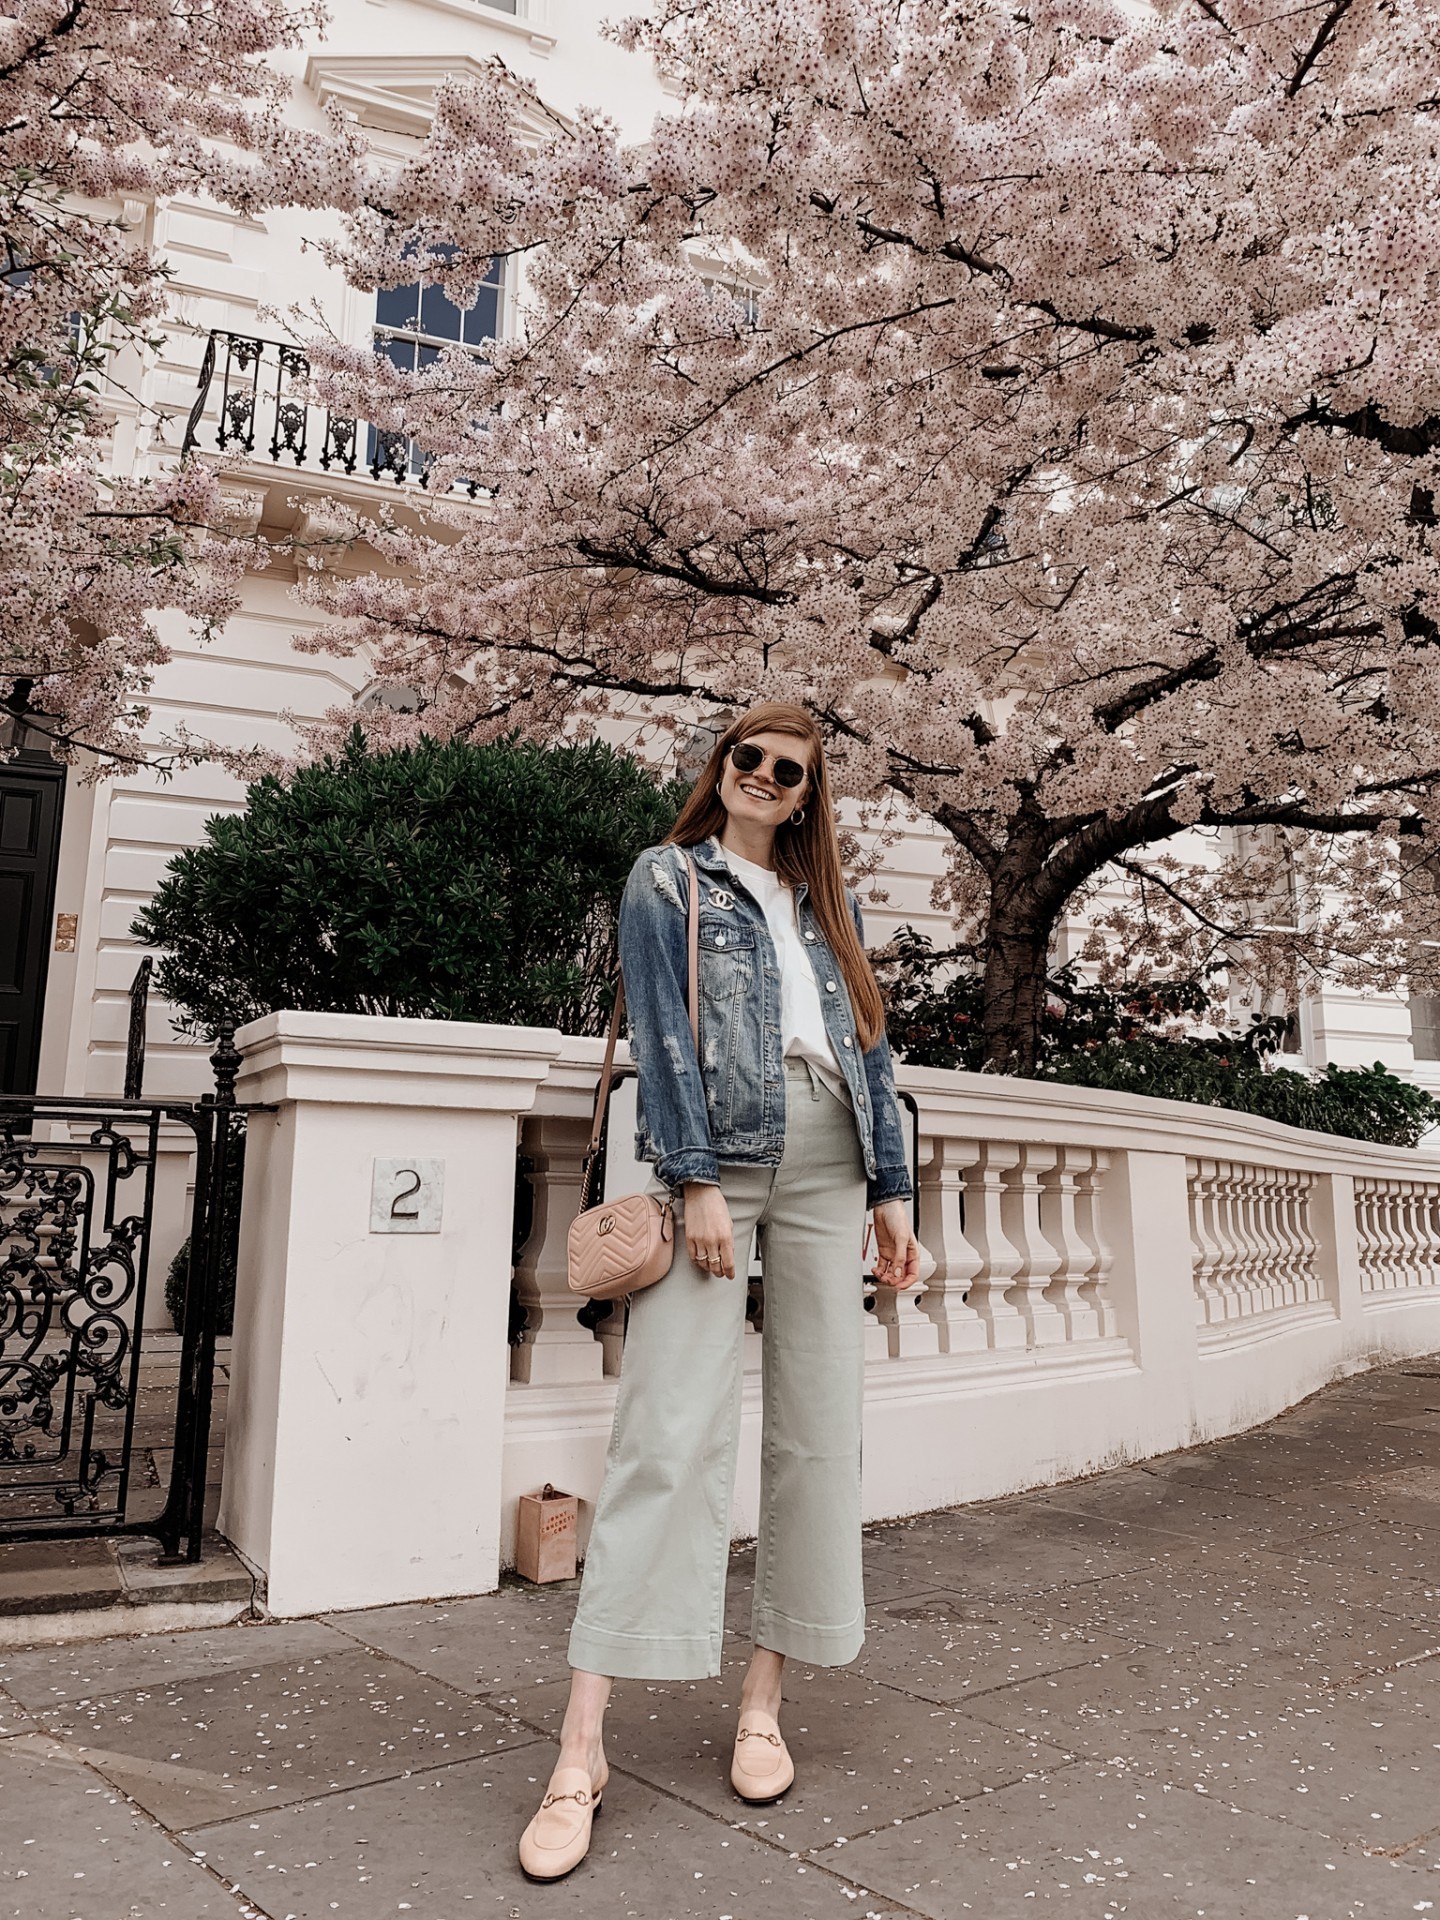 Lifestyle blogger Mollie Moore shares 5 spring outfits to recreate this season